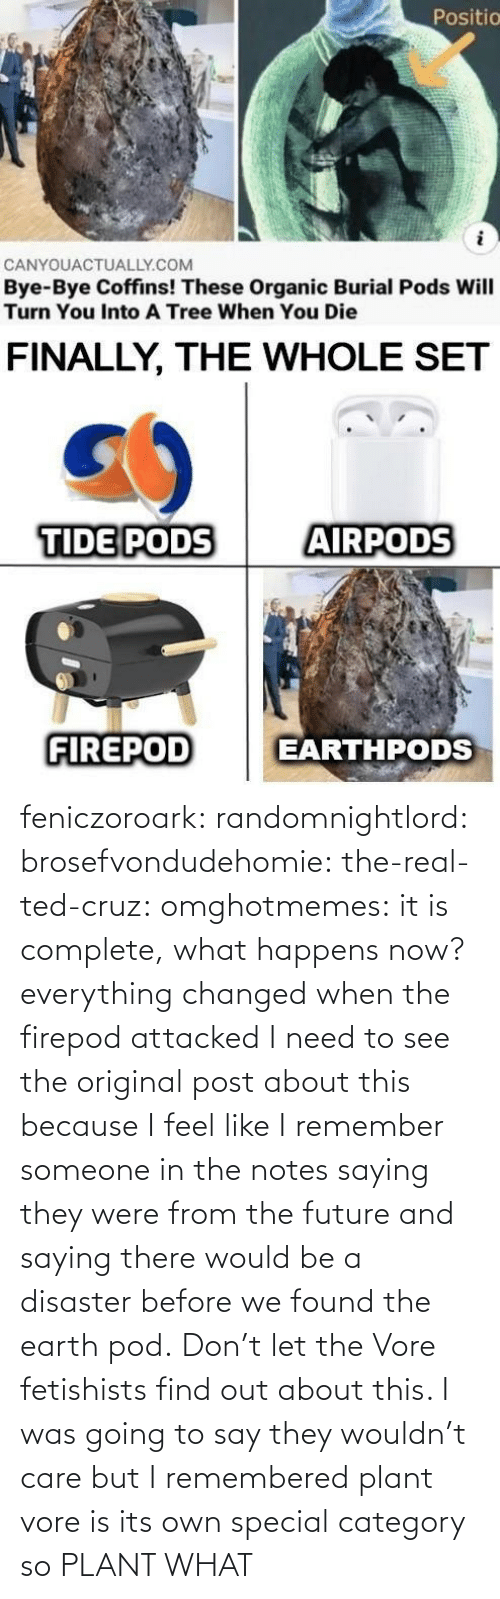 Future: feniczoroark:  randomnightlord:  brosefvondudehomie: the-real-ted-cruz:  omghotmemes: it is complete, what happens now? everything changed when the firepod attacked    I need to see the original post about this because I feel like I remember someone in the notes saying they were from the future and saying there would be a disaster before we found the earth pod.    Don't let the Vore fetishists find out about this.    I was going to say they wouldn't care but I remembered plant vore is its own special category so   PLANT WHAT